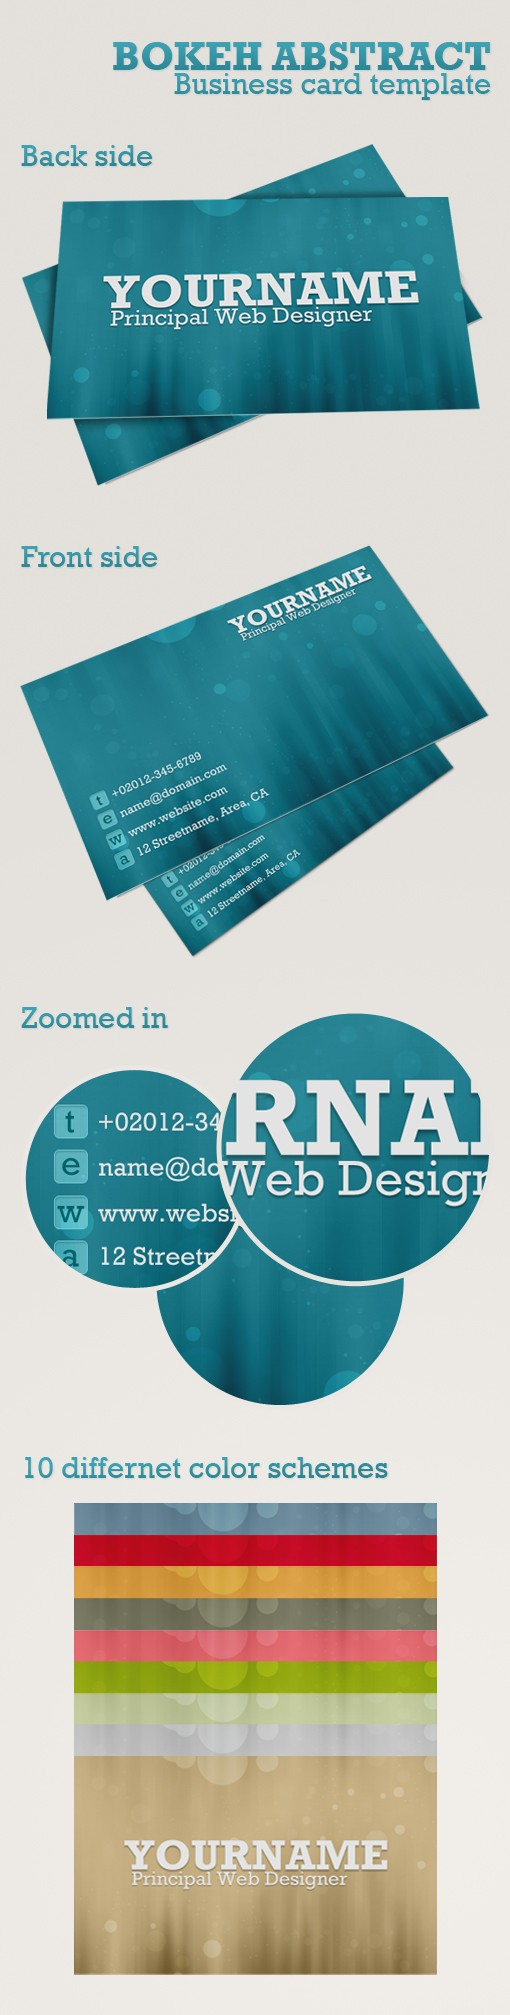 Large Bokeh Business Cards Preview